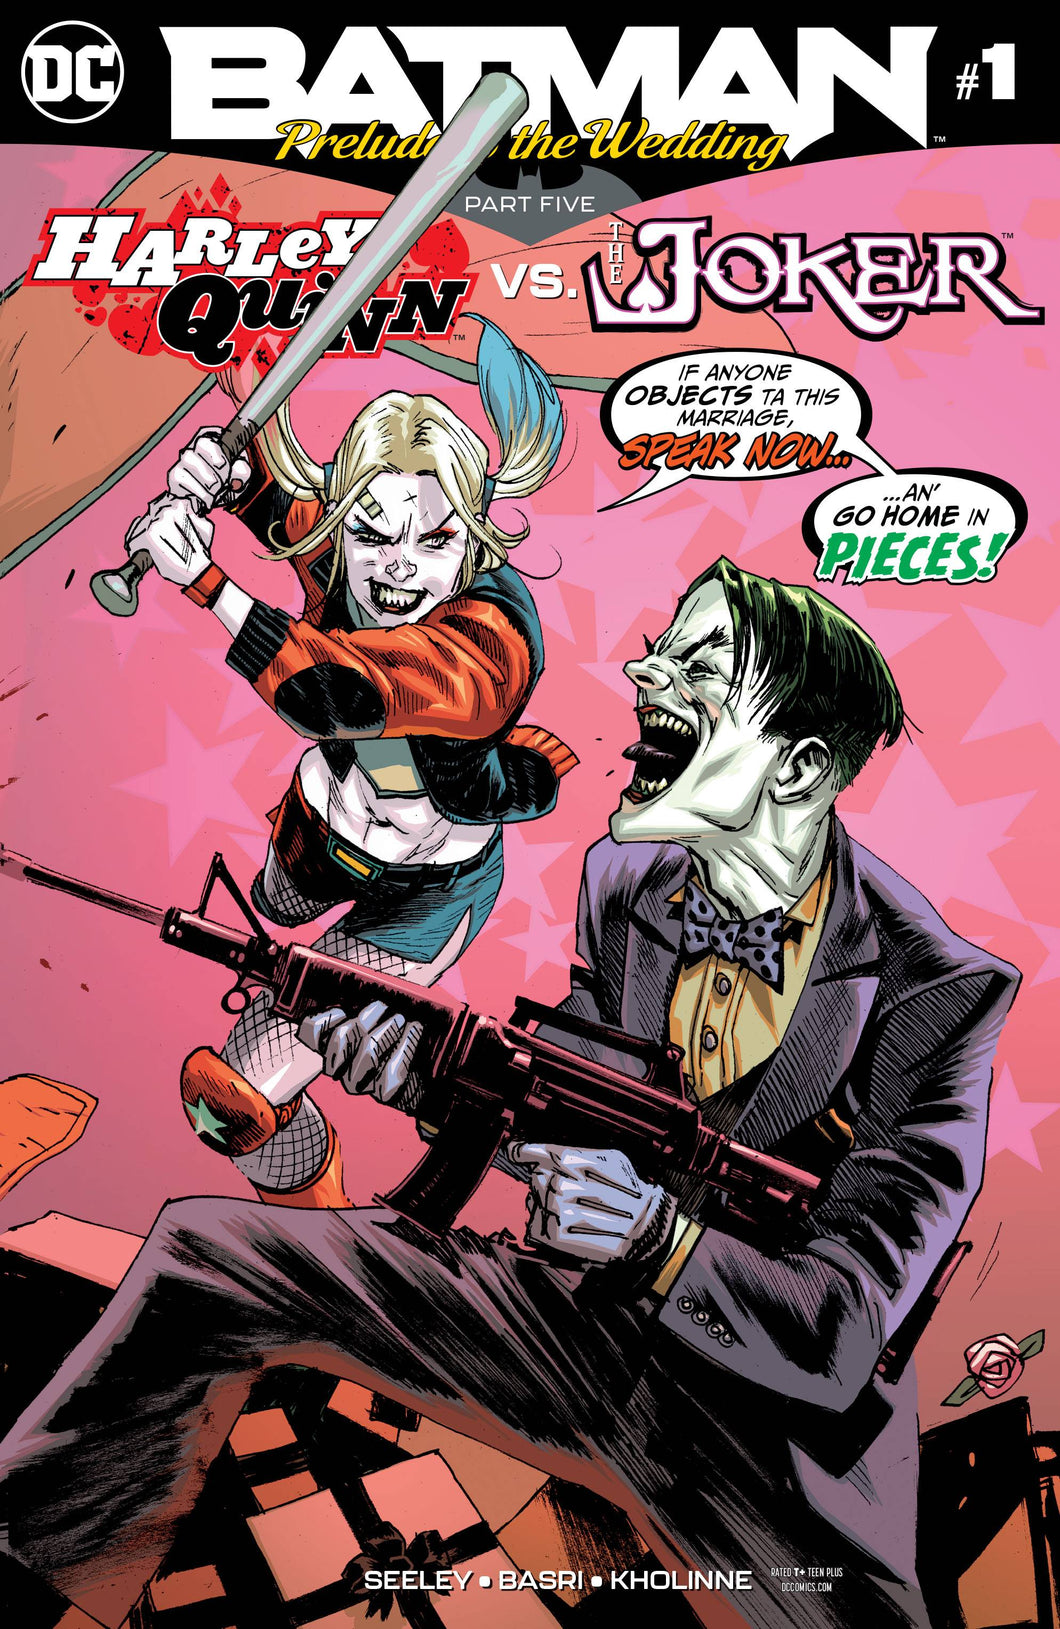 BATMAN PRELUDE TO THE WEDDING HARLEY VS JOKER #1 (06/27/2018)